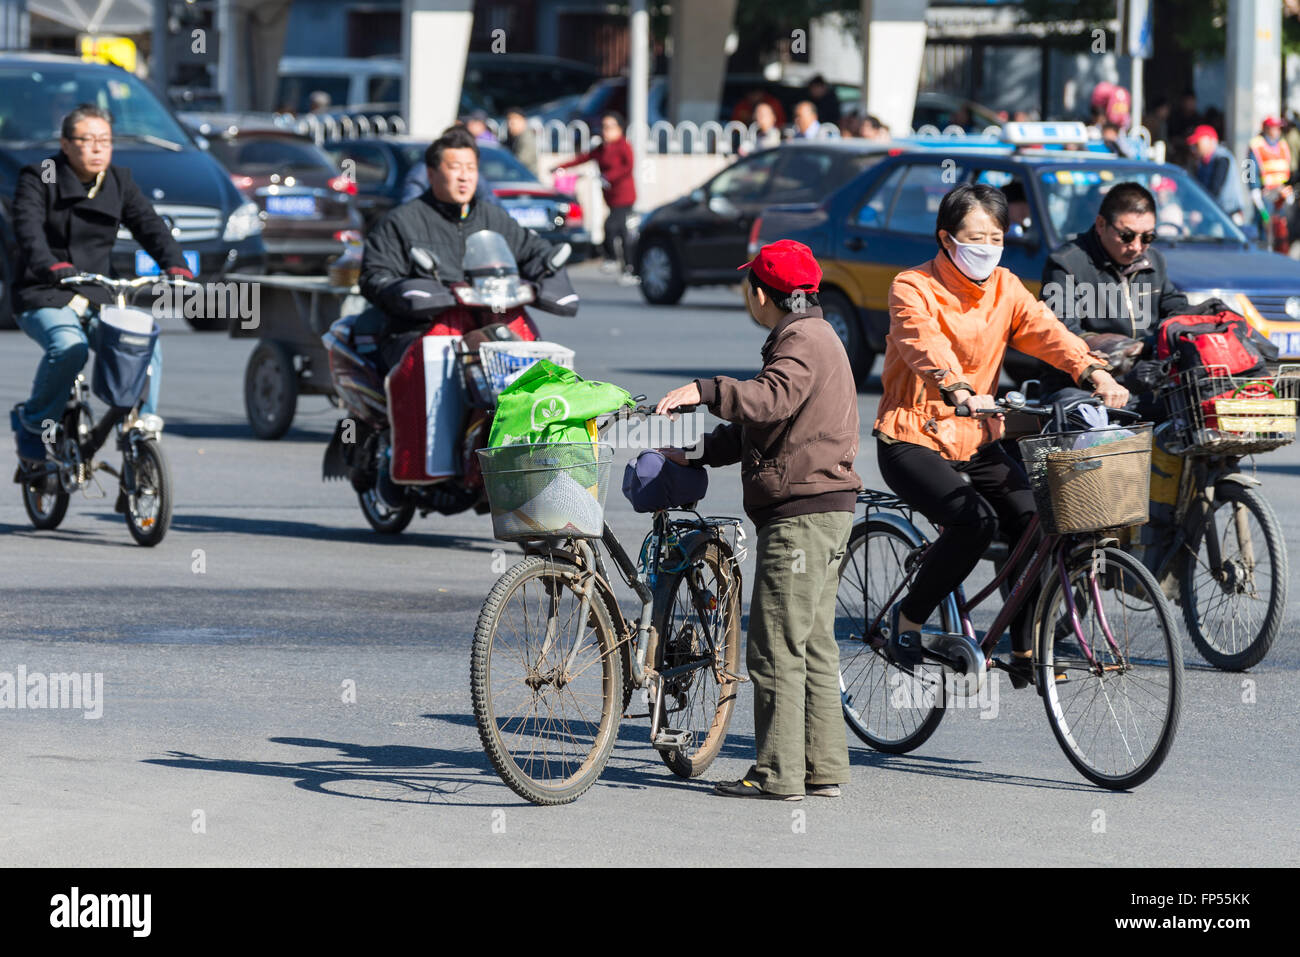 Bicyclists and bikers on the street in Beijing, China. Bicycles are a common form of transportation in the country. - Stock Image